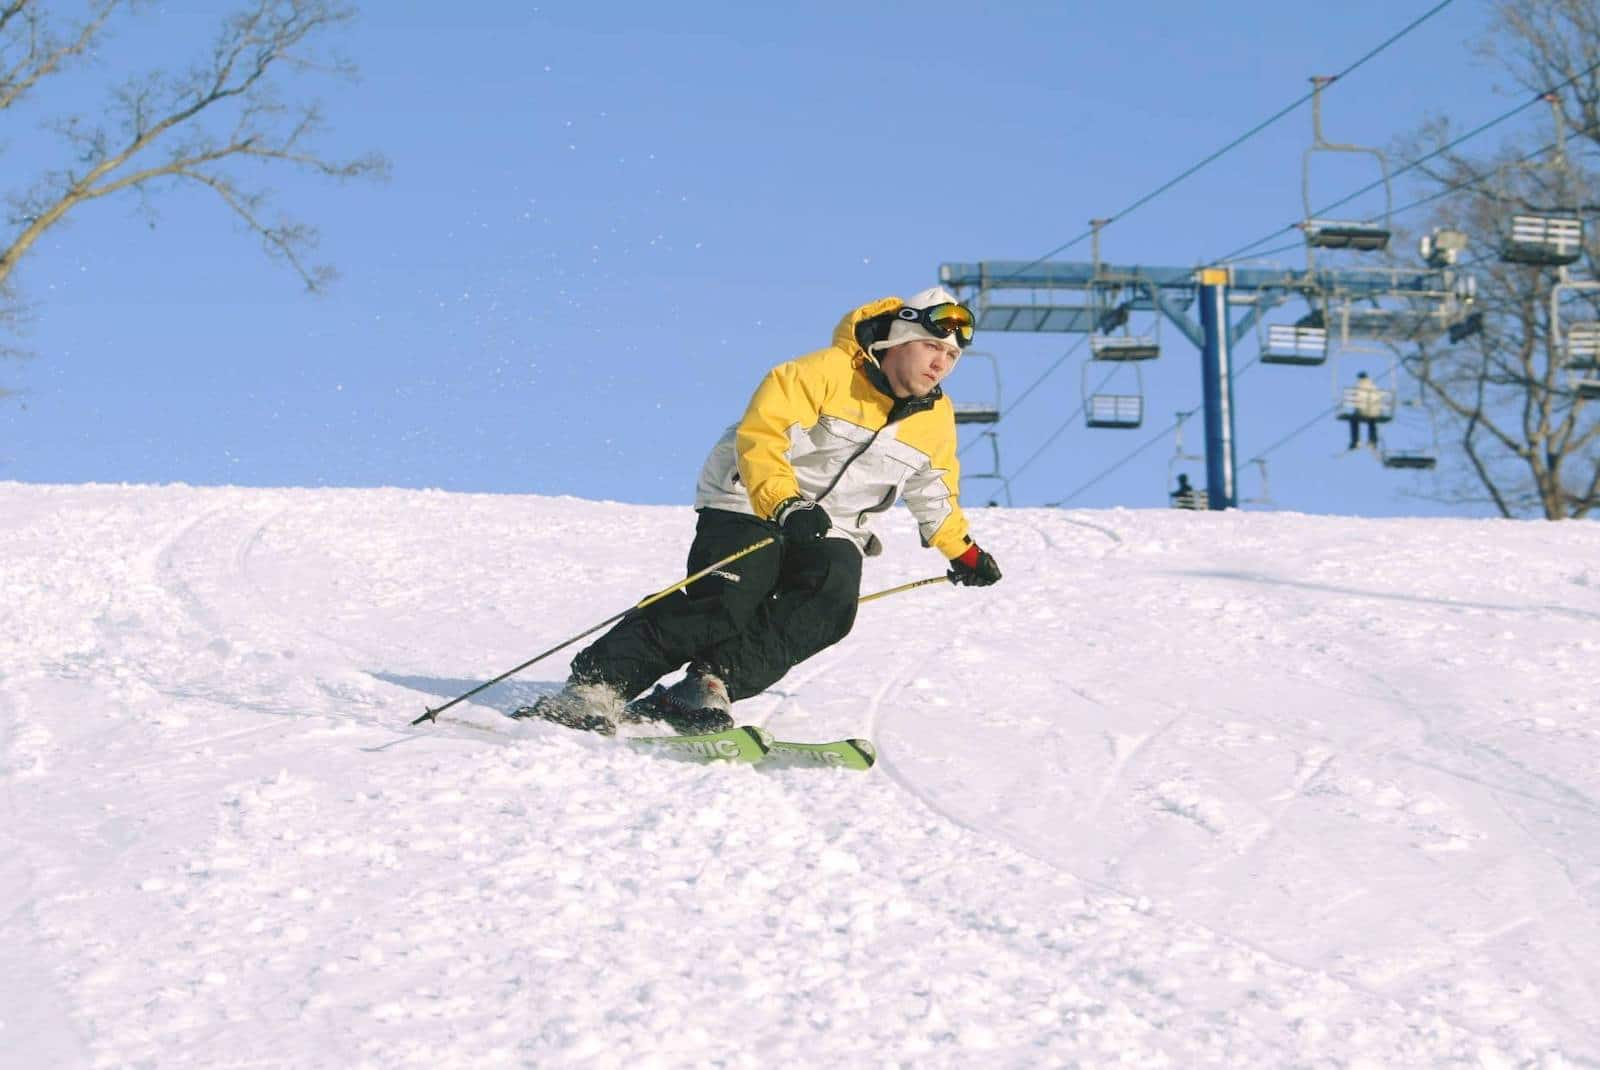 Image of a skier in yellow going down the slope at Snowstar Winter Park in Illinois